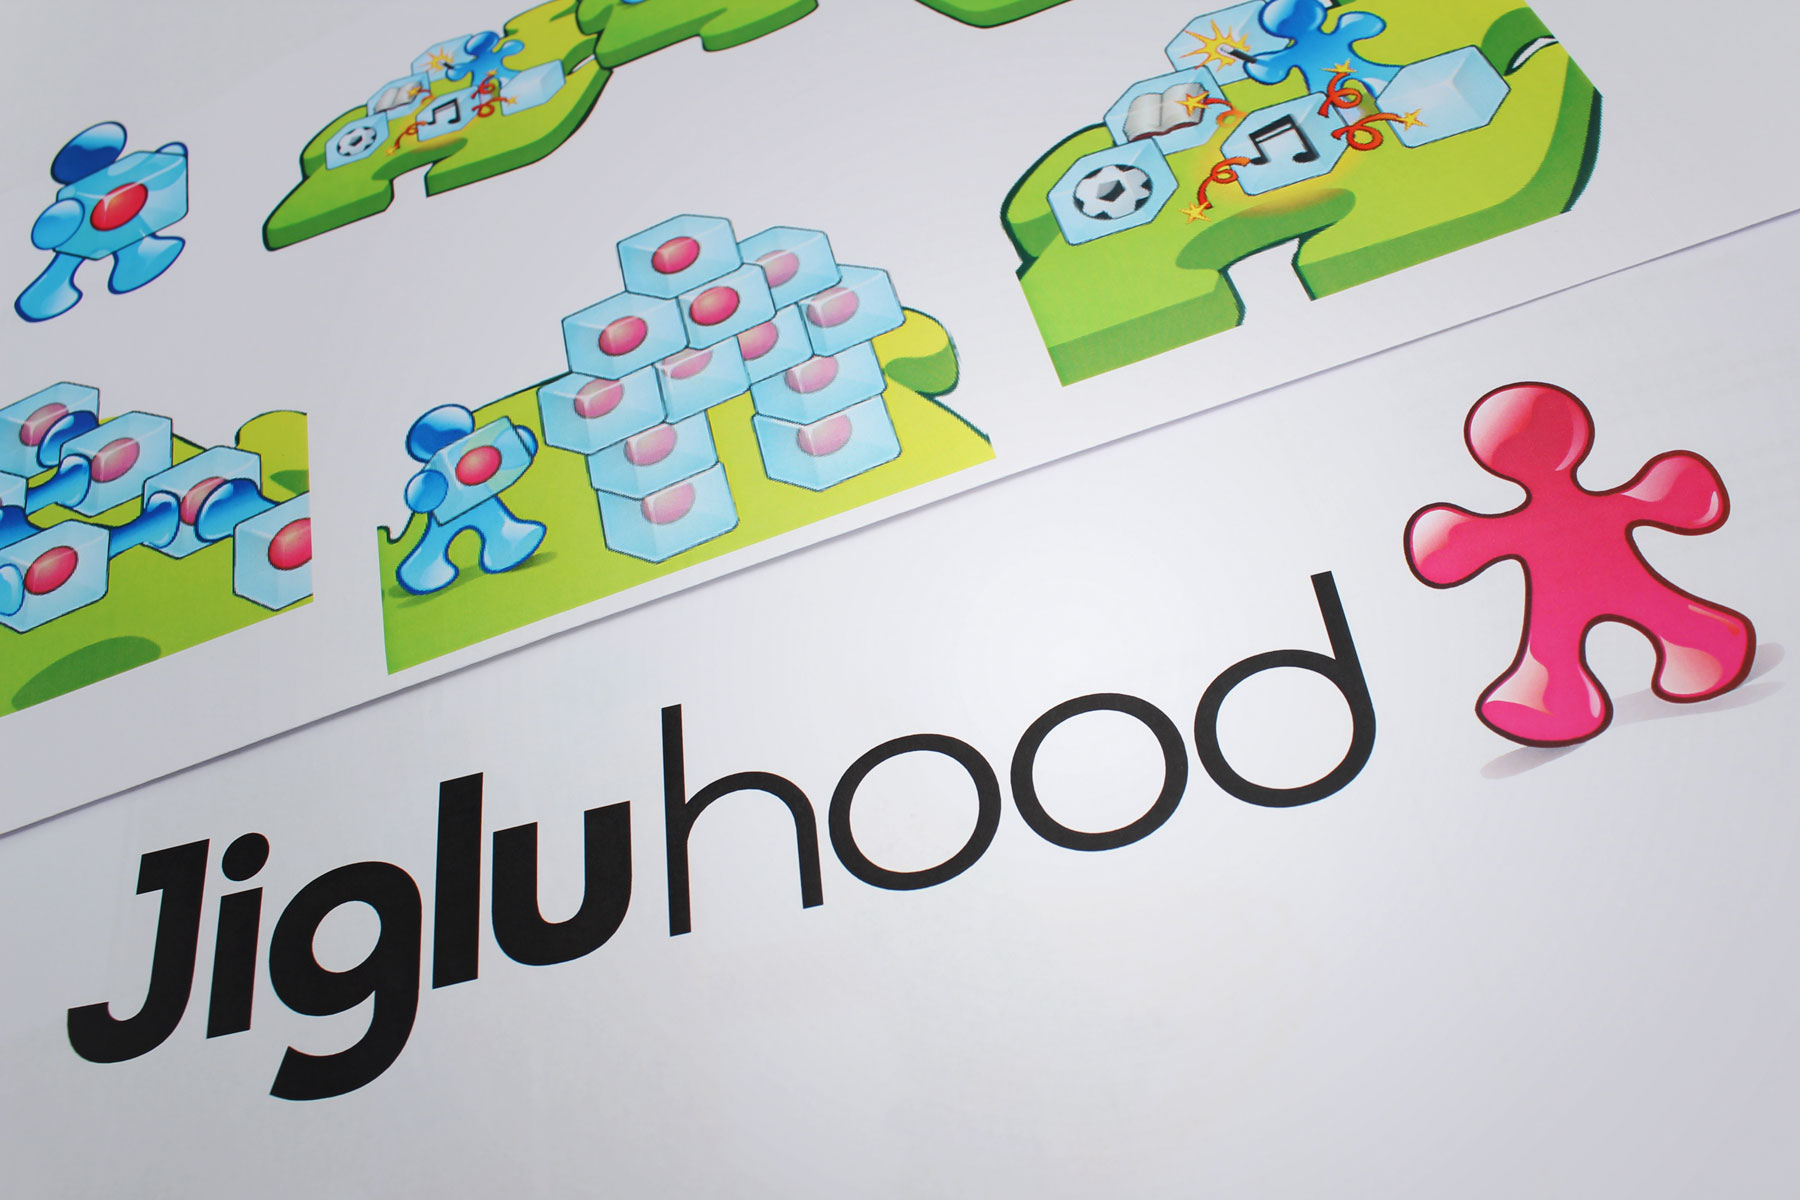 The brand was applied to the Jiglu social offering and supported by a number of community illustrations which conveyed the benefits of the product.